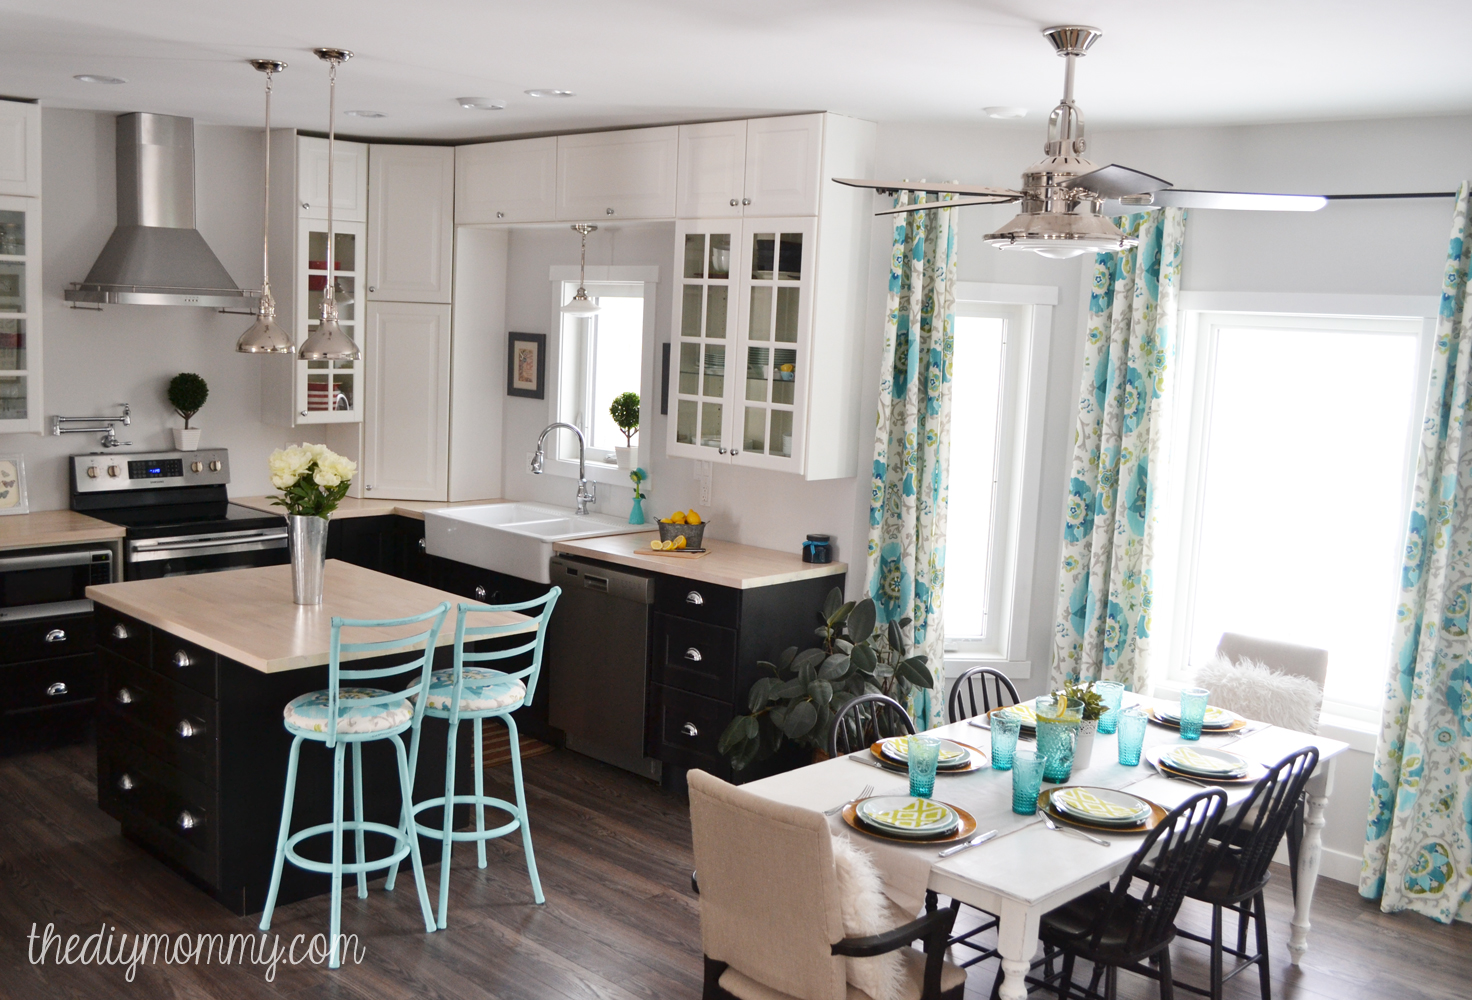 black, white and turquoise DIY kitchen design with Ikea cabinets